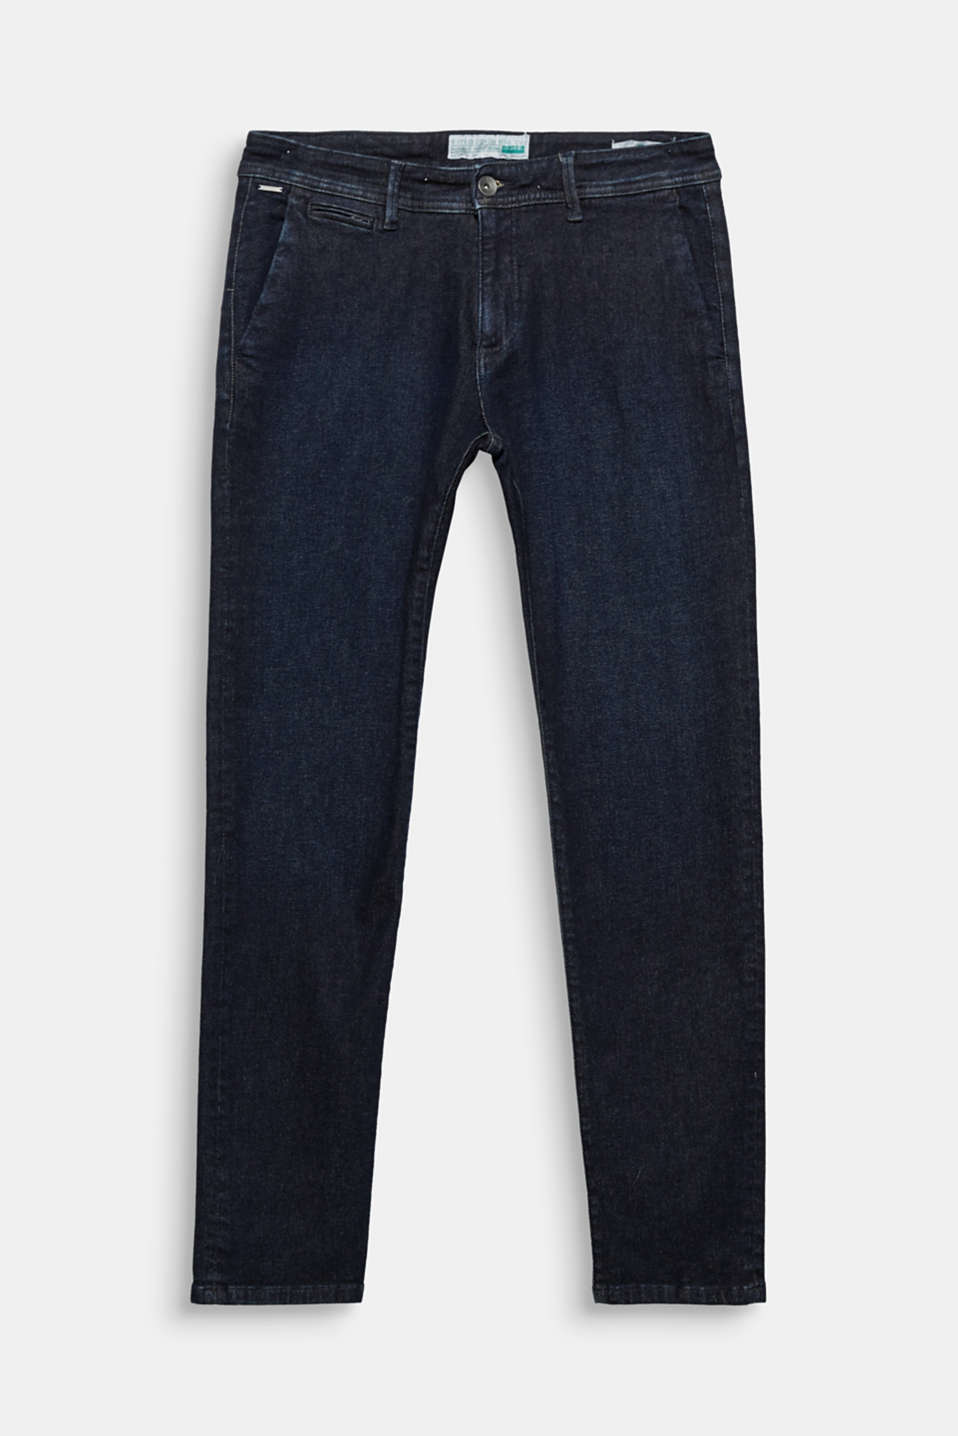 Chinos meet jeans with this pair made of gently processed, high-quality organic cotton.